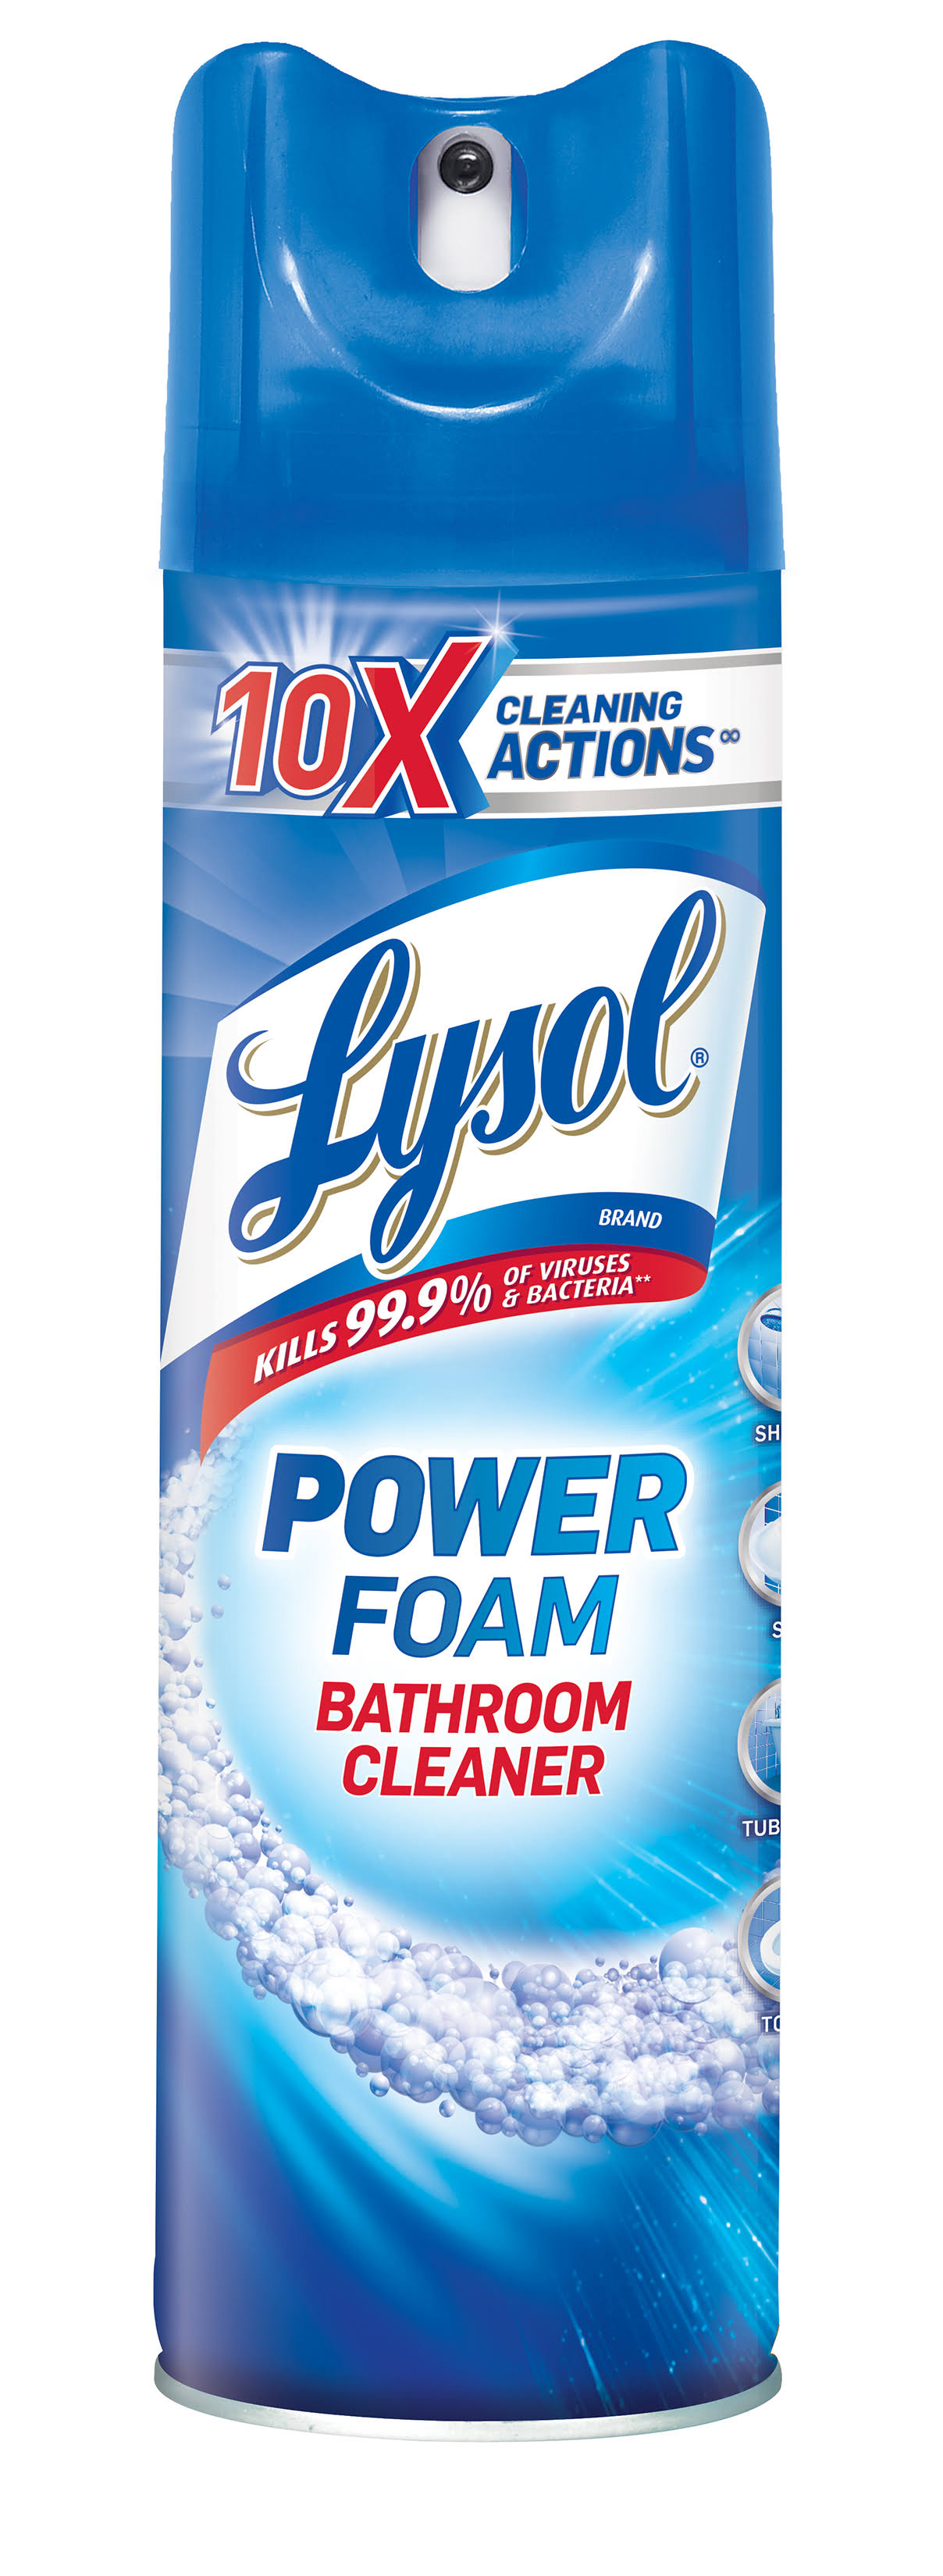 Lysol Power Foam Bathroom Cleaner - 24oz